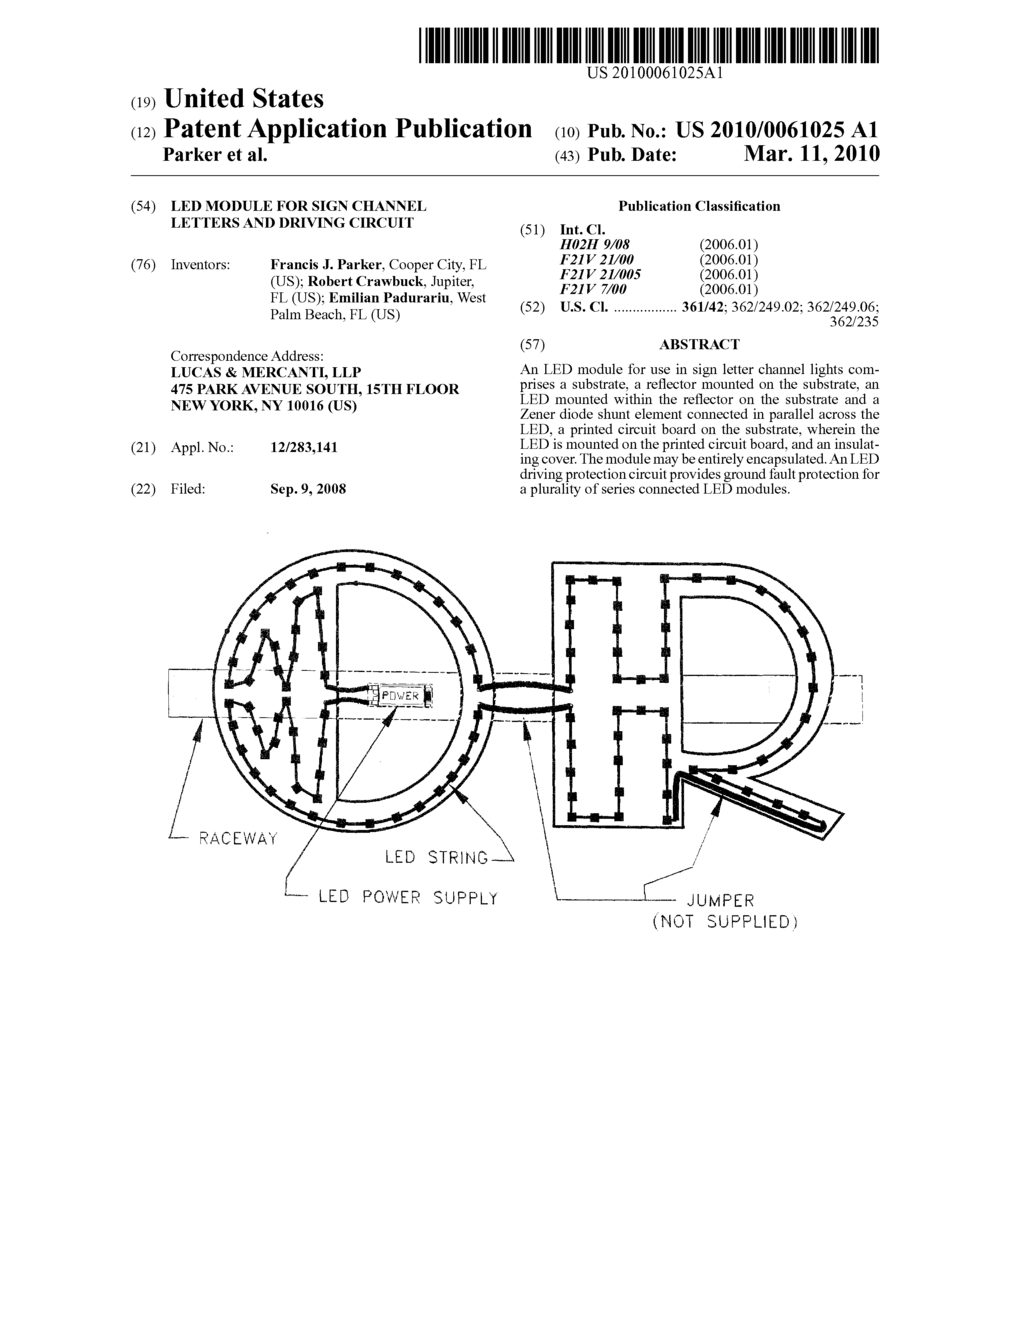 hight resolution of led module for sign channel letters and driving circuit diagram schematic and image 01